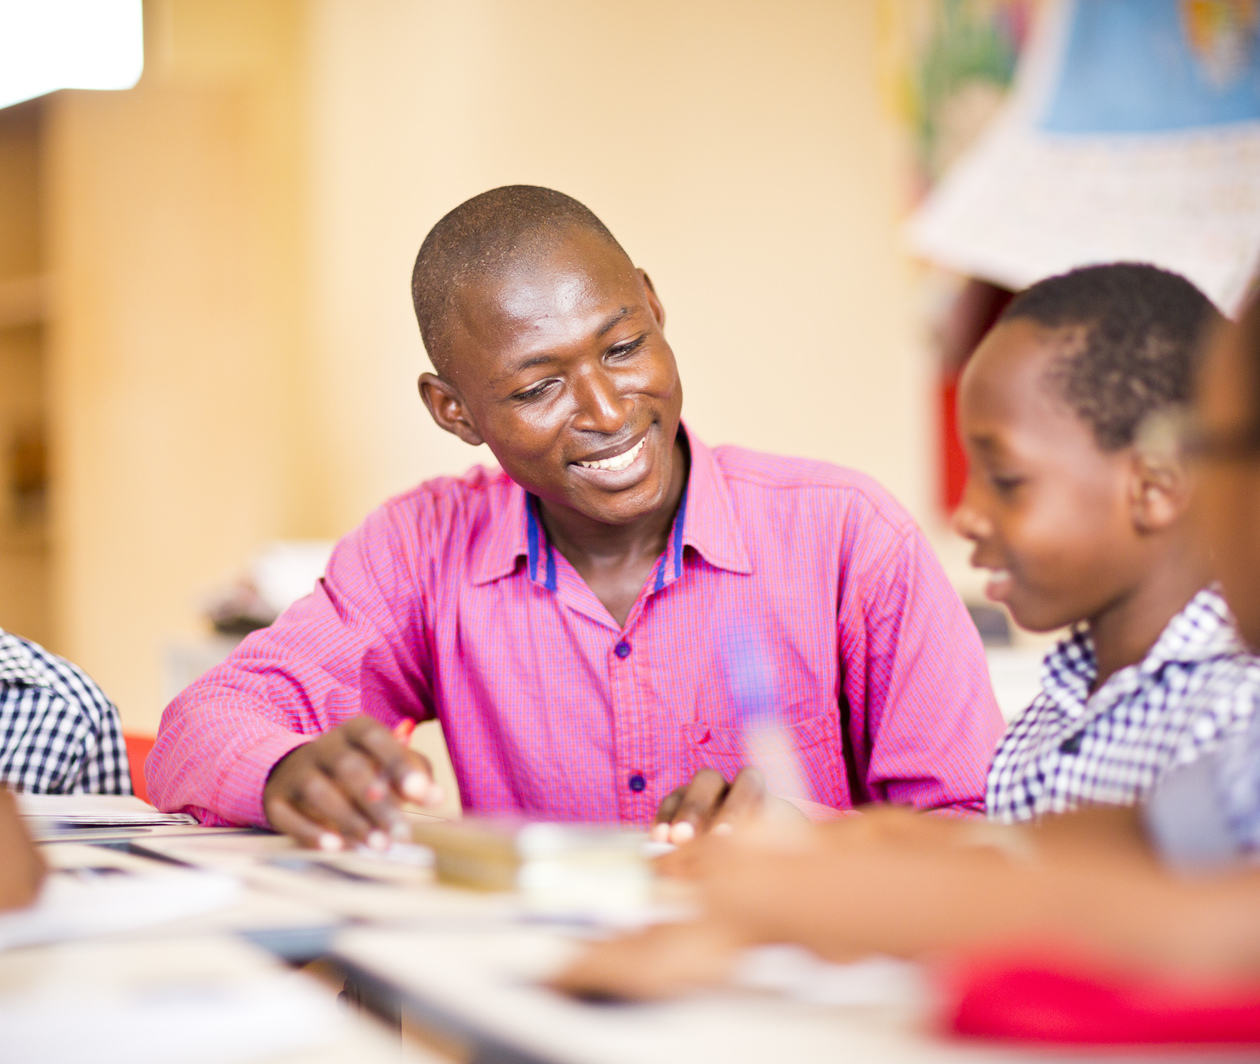 Teaching English: How to Plan a Great Lesson